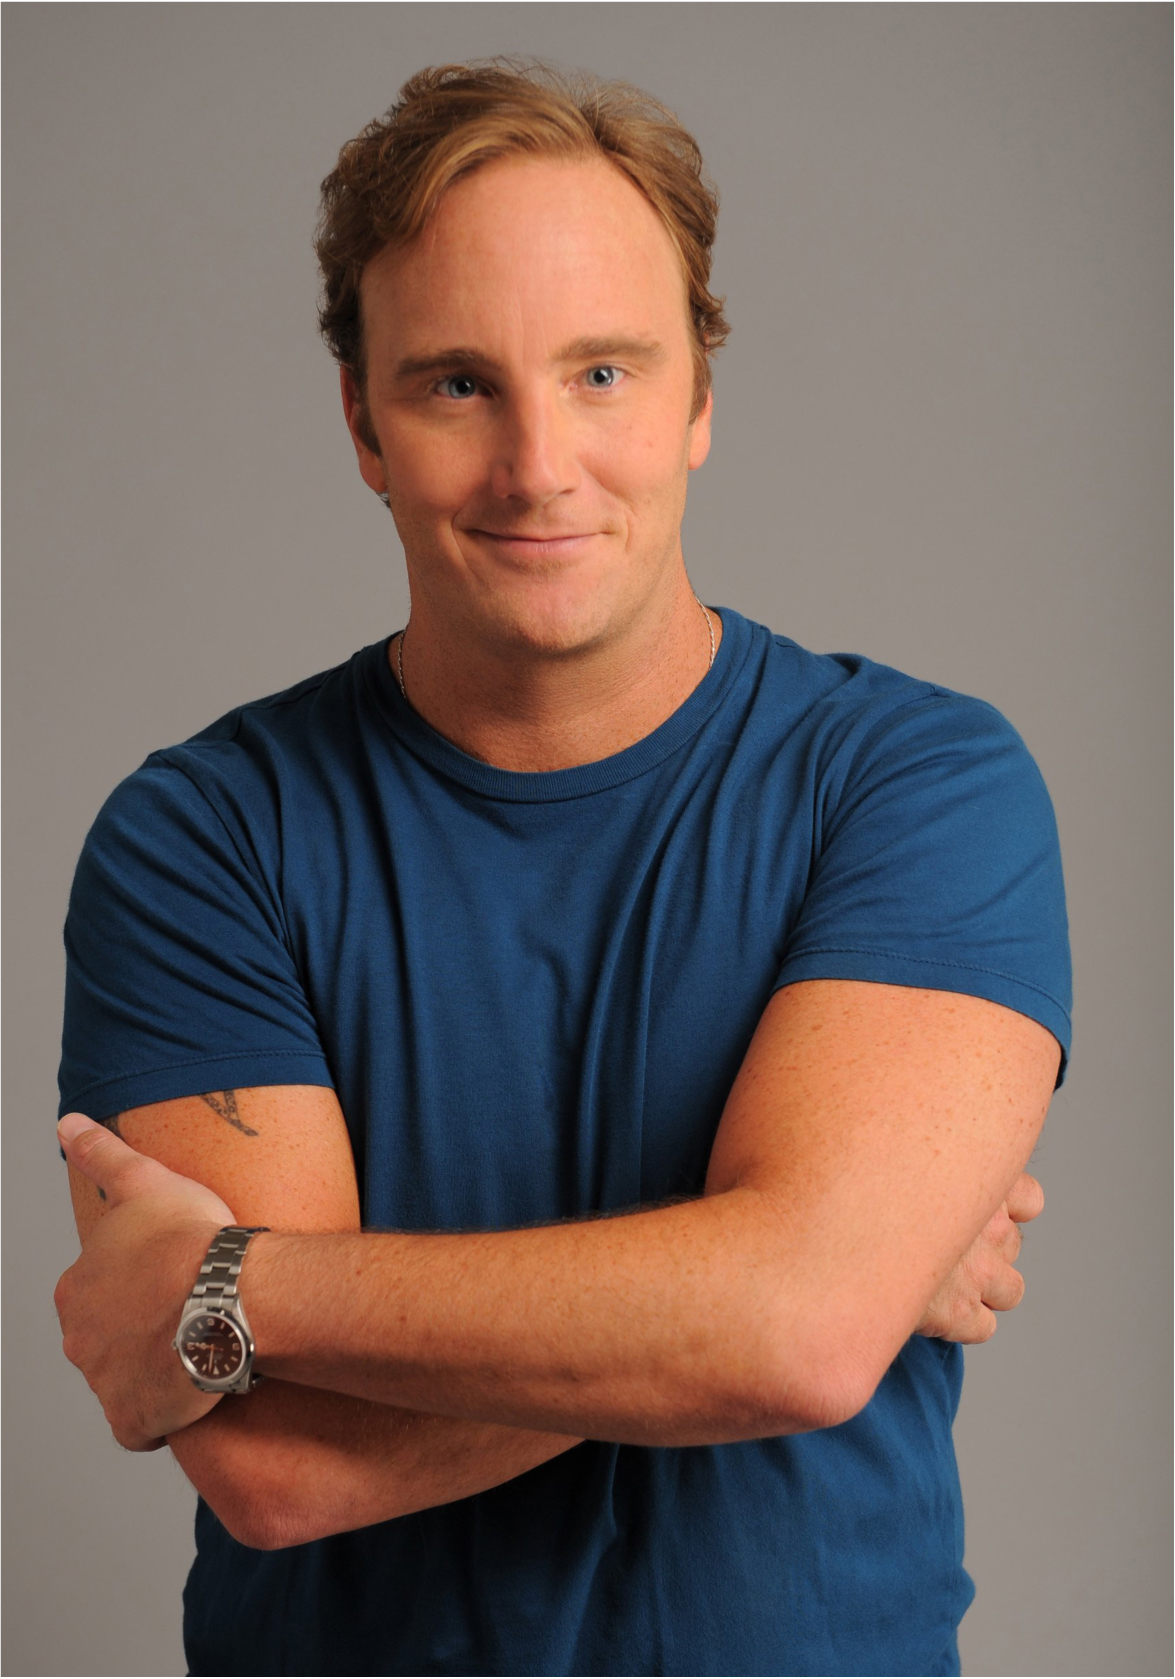 jay mohr instagramjay mohr norm macdonald, jay mohr instagram, jay mohr son, jay mohr, jay mohr sports, jay mohr net worth, jay mohr imdb, jay mohr tracy morgan, jay mohr youtube, jay mohr happy and a lot, jay mohr stories, jay mohr scrubs, jay mohr wife, jay mohr podcast, jay mohr twitter, jay mohr christopher walken, jay mohr sports podcast, jay mohr stand up, jay mohr nikki cox, jay mohr wife nikki cox